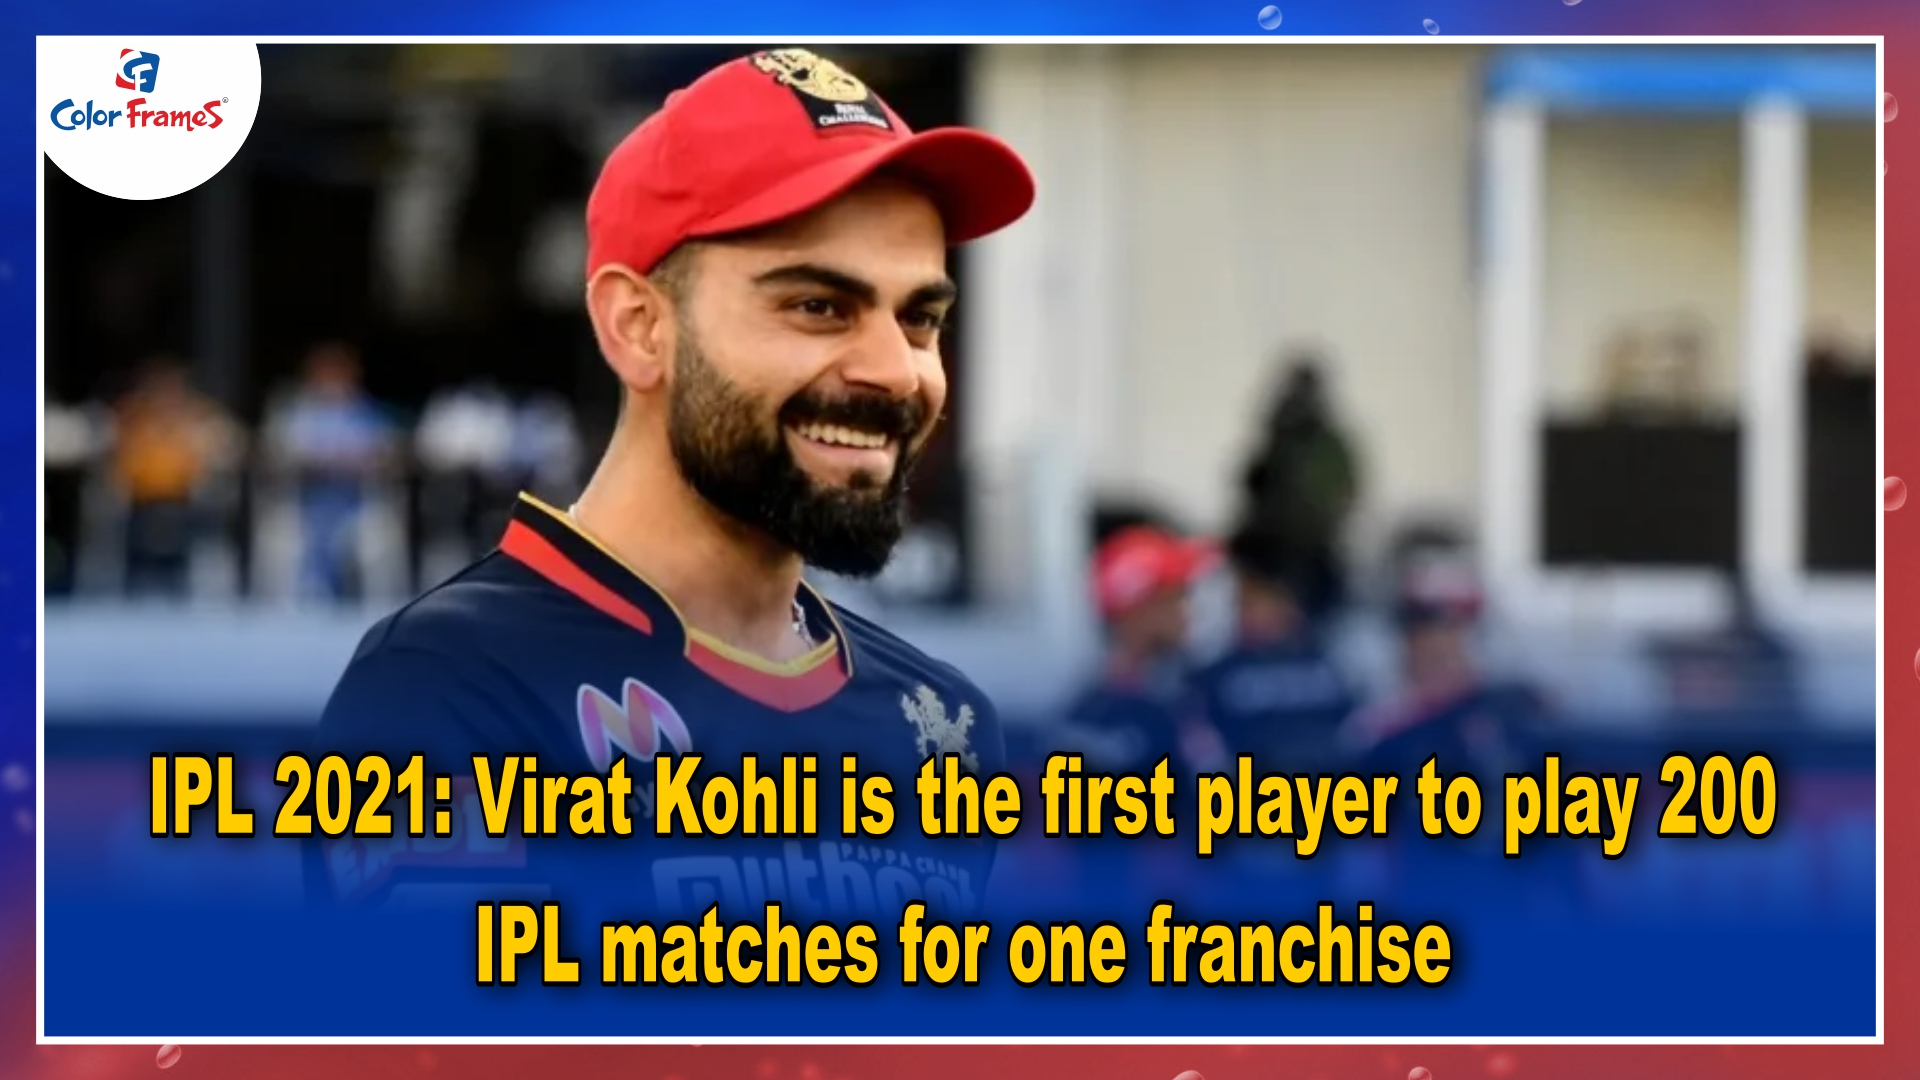 IPL 2021: Virat Kohli is the first player to play 200 IPL matches for one franchise